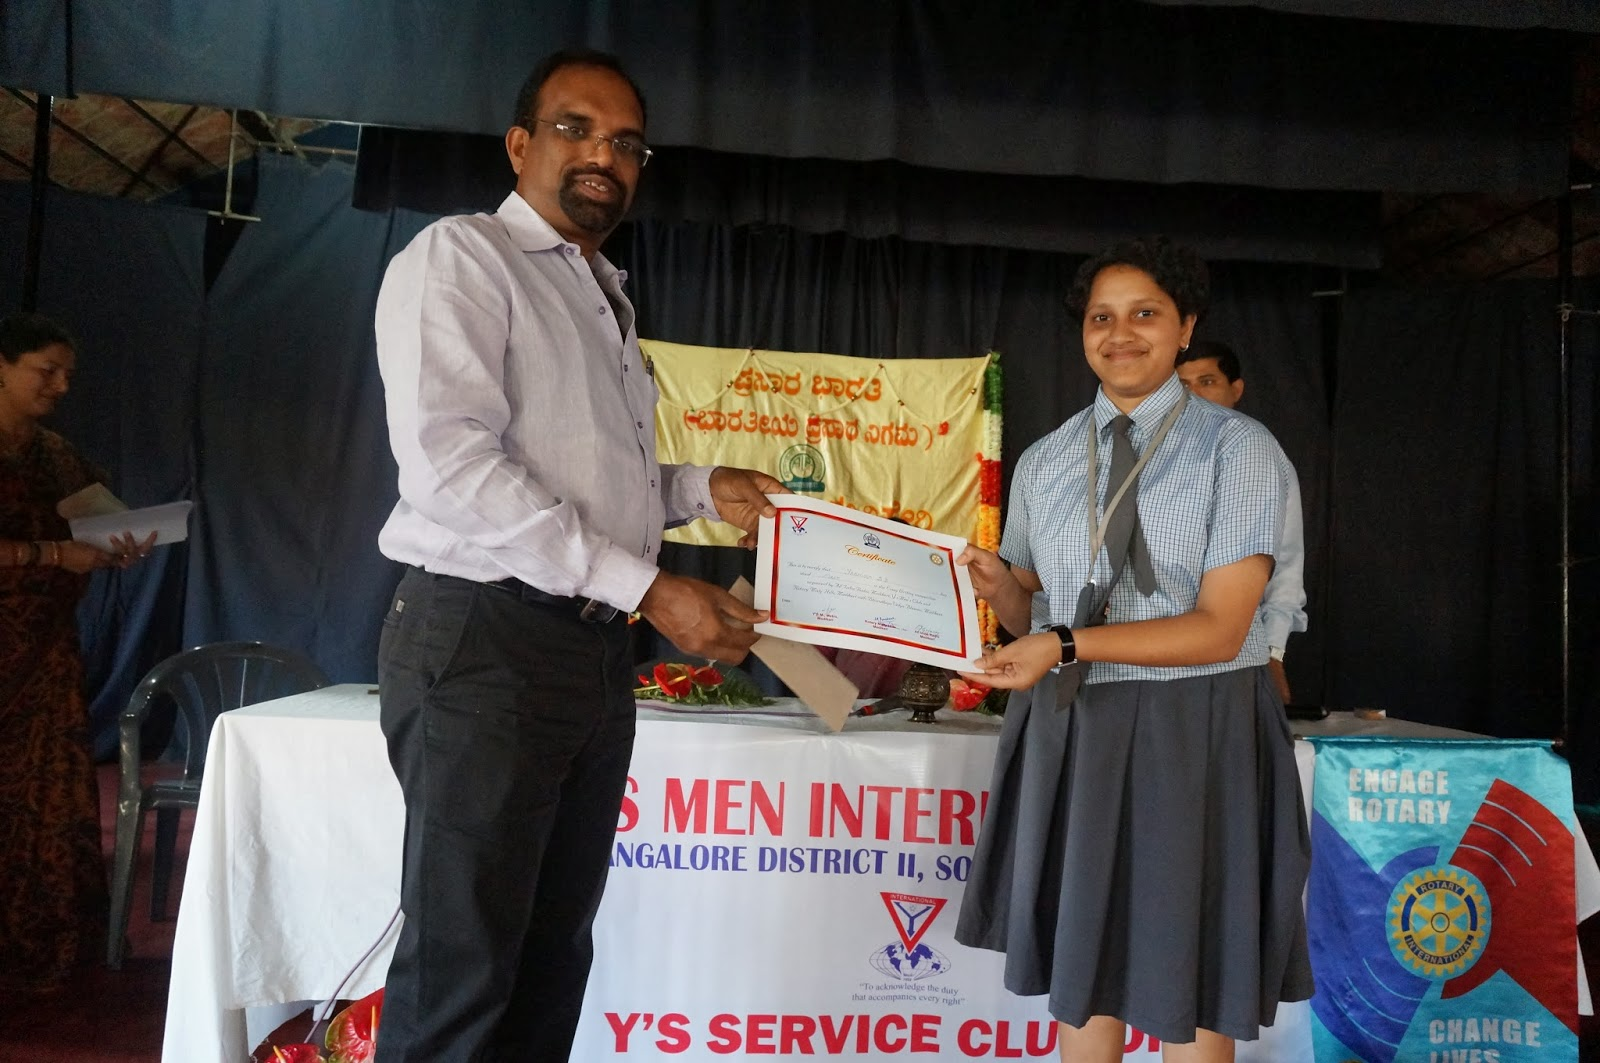 prasar bharati parivar all radio madikeri conducted essay all radio madikeri andy s men international bangalore jointly conducted essay competition for high school college students and general public